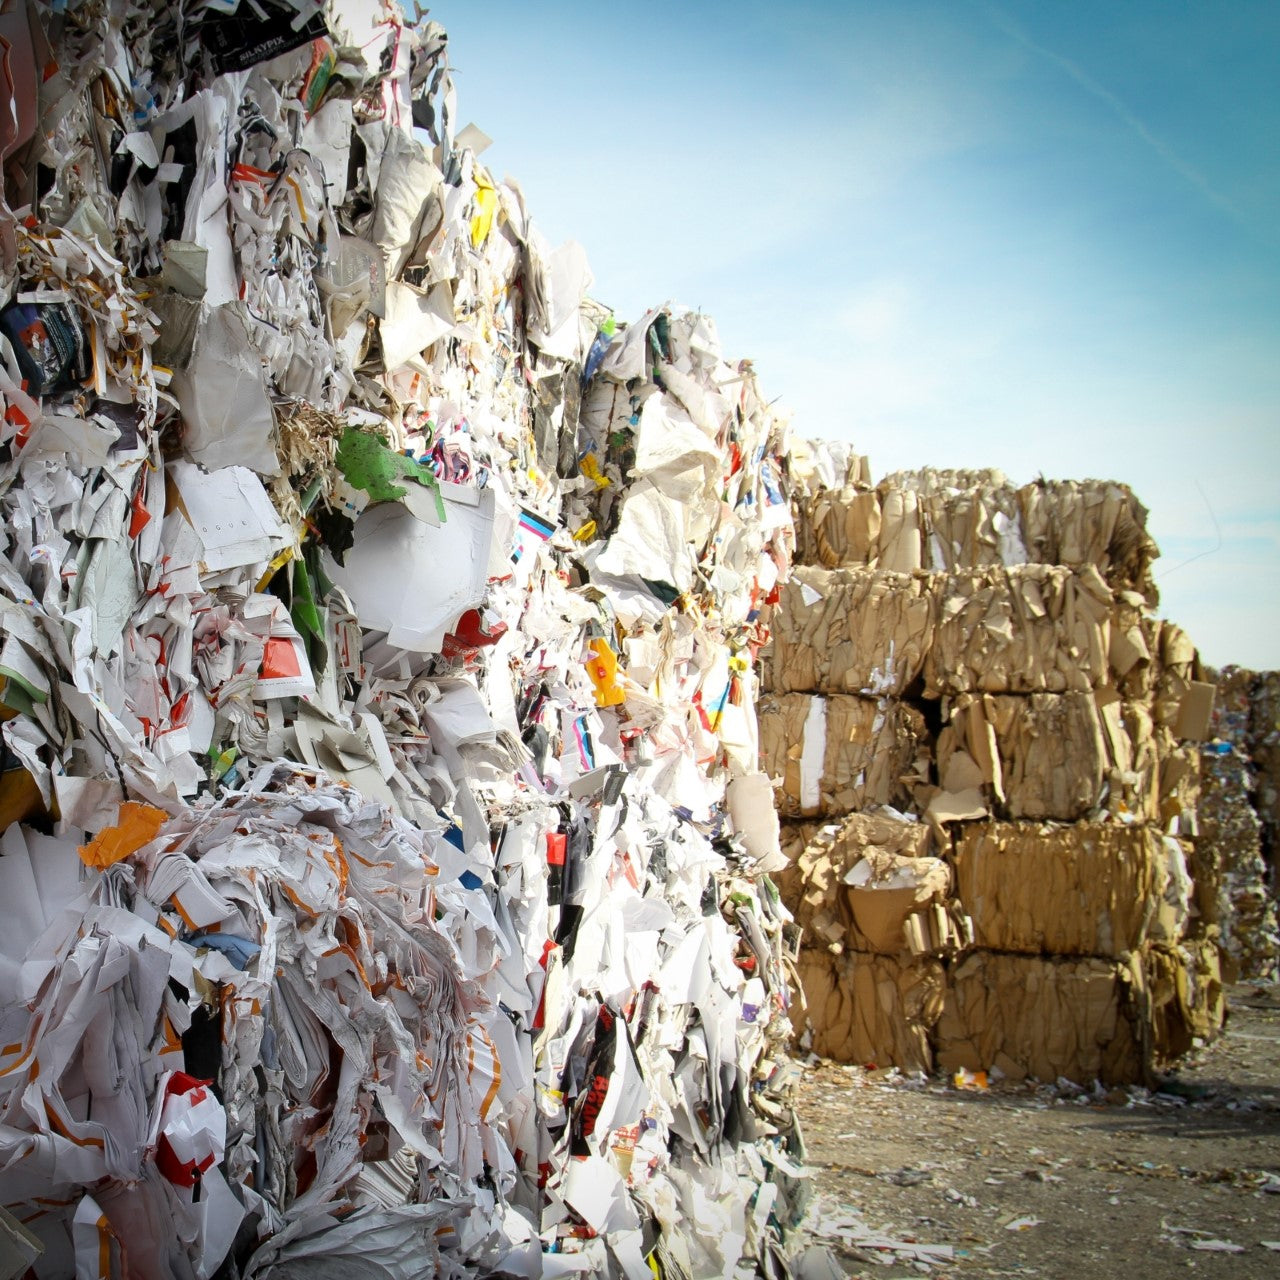 Coppermill Ltd Textile Recycling